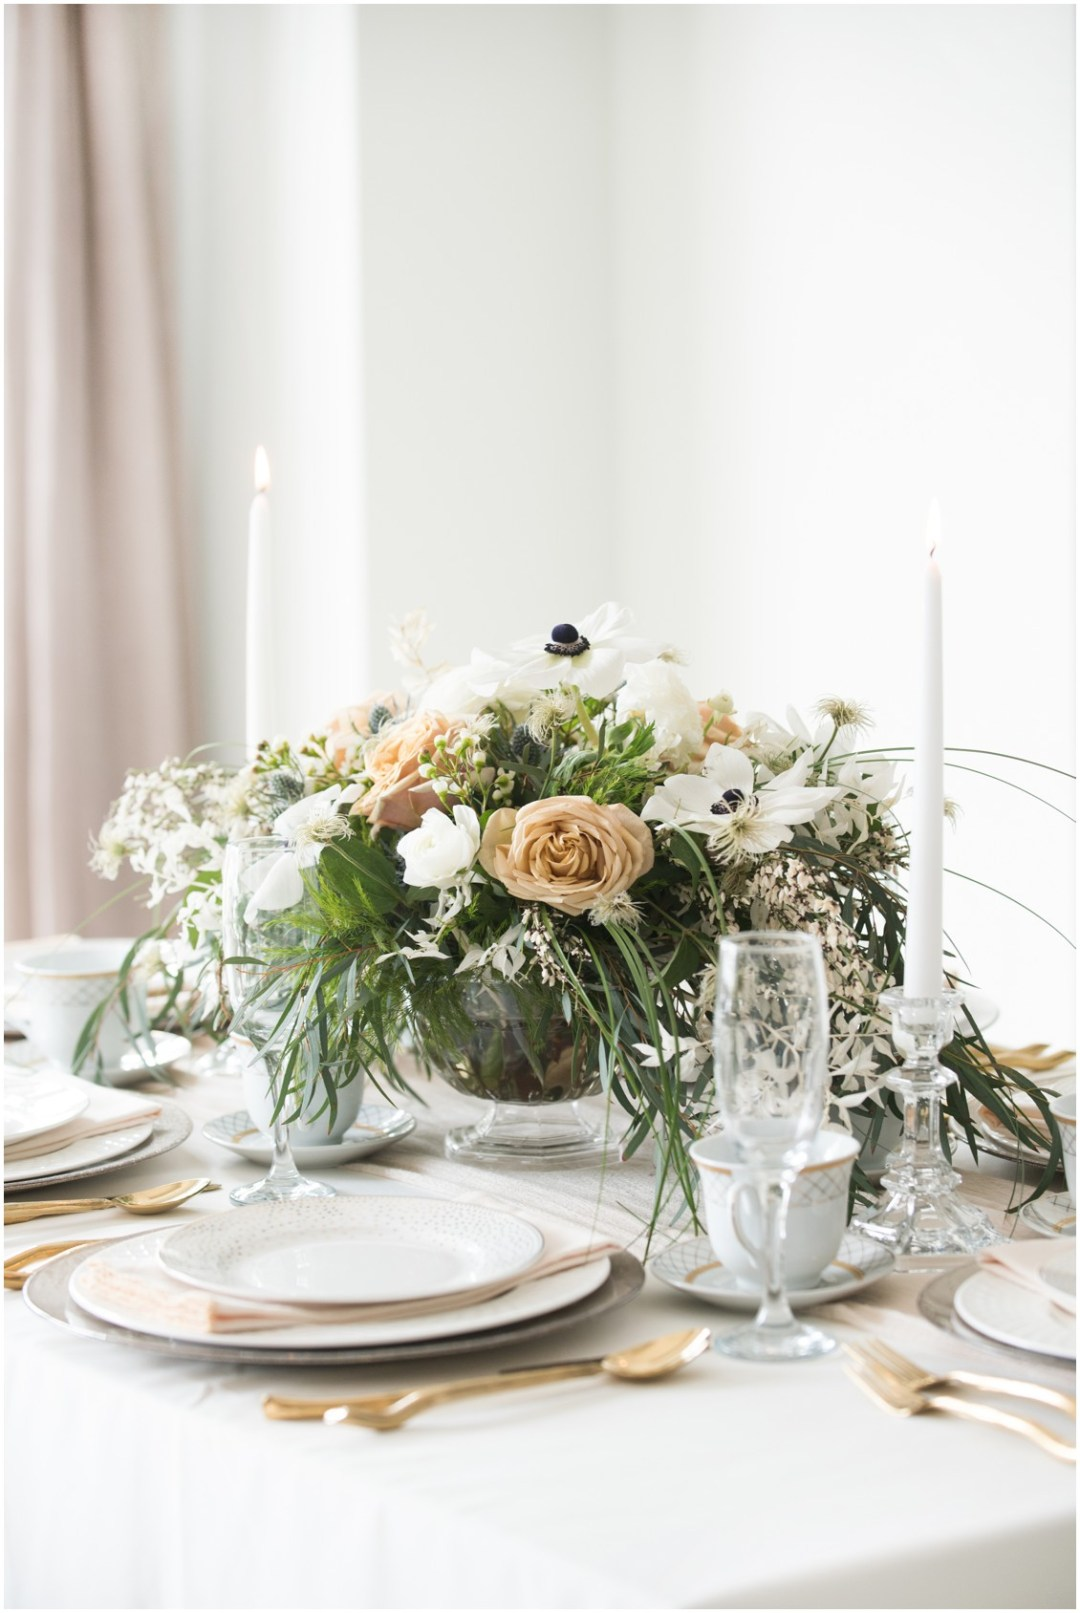 Neutral and Gold Tablescape  | 5 Things to Consider When Choosing Your Wedding Cake Designer  | My Eastern Shore Wedding | Chef Steve Konopelski